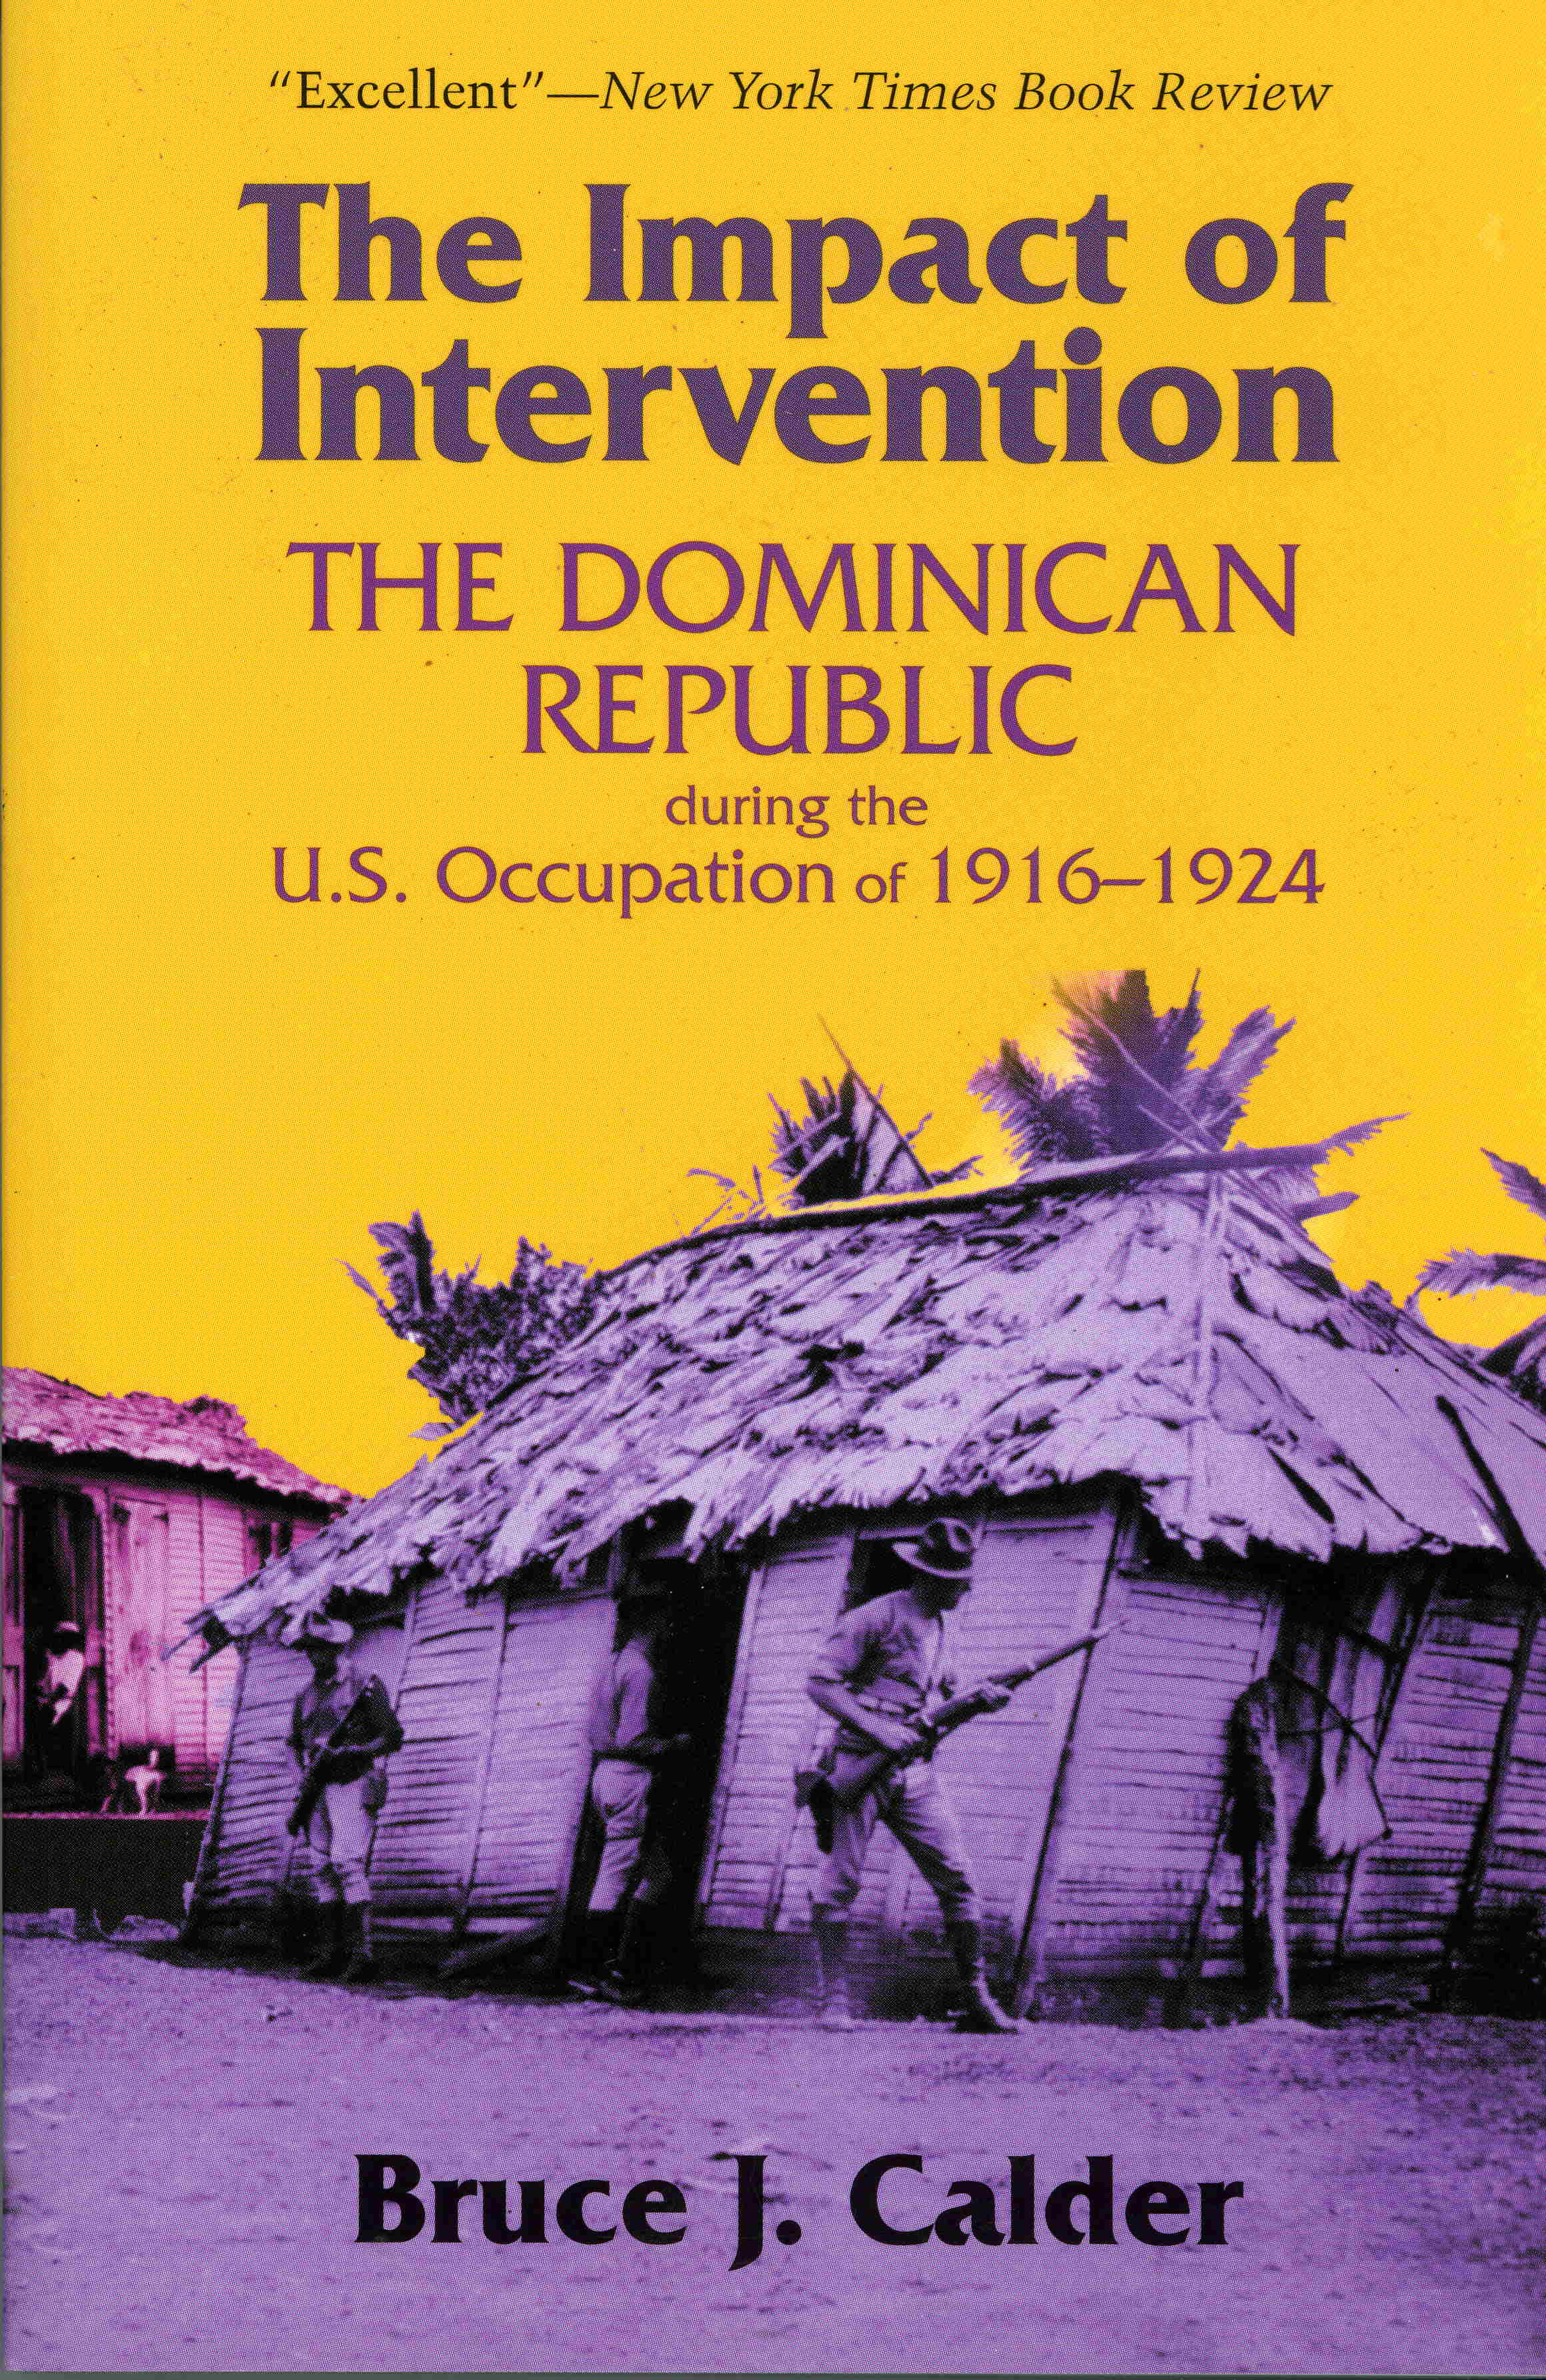 the history of american occupation of the dominican republic Meanwhile, dominican-american writers junot díaz and julia alvarez troubled history between the dominican republic and haiti a common occupation of both haiti and the dominican republic at the turn of the century, and both sides of the island have been marred.